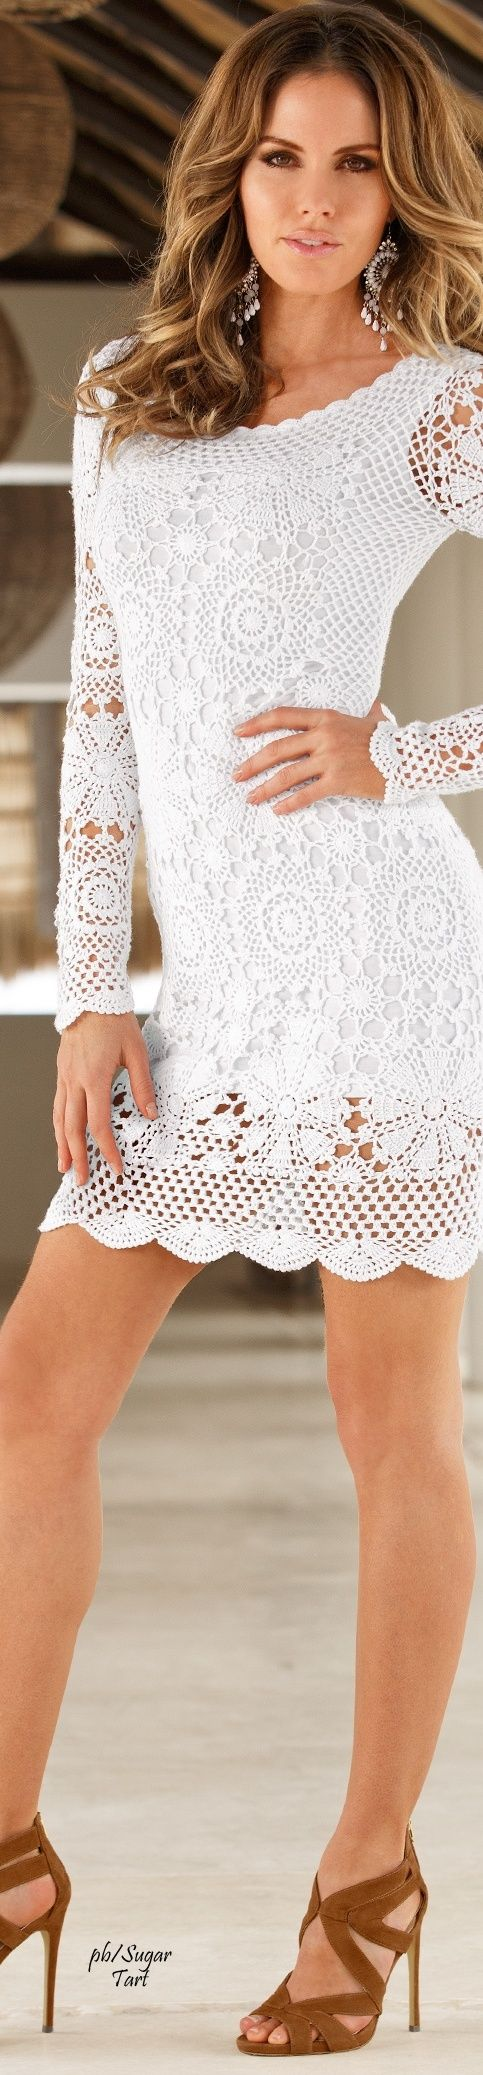 white crochet dress. handmade  women fashion outfit clothing style apparel @roressclothes closet ideas